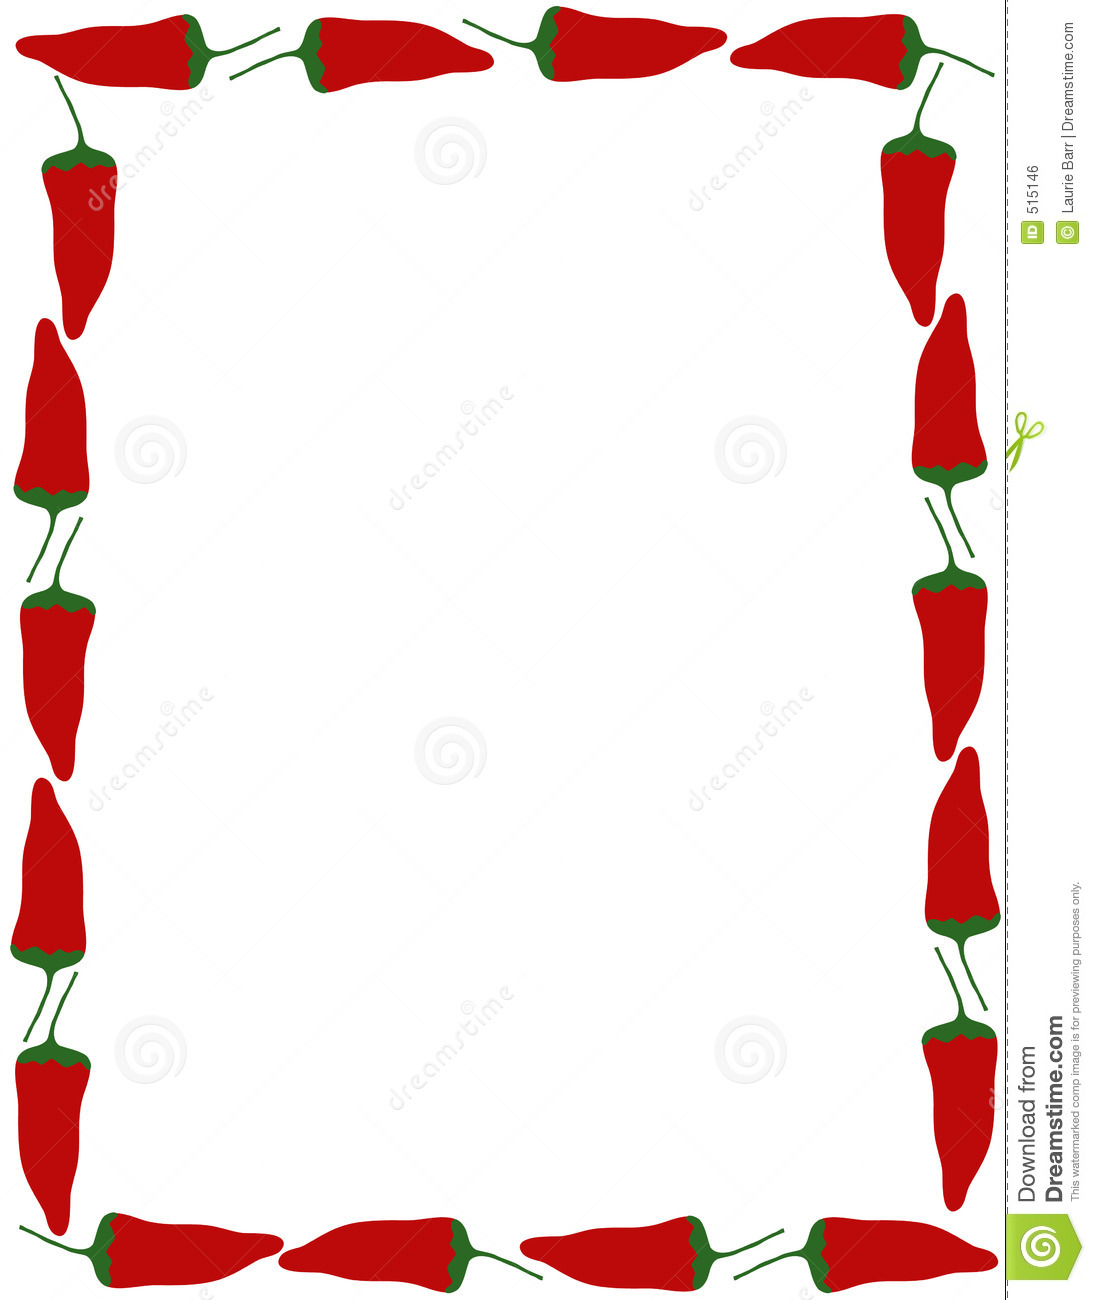 Pepper Border Royalty Free Stock Image - Image: 515146